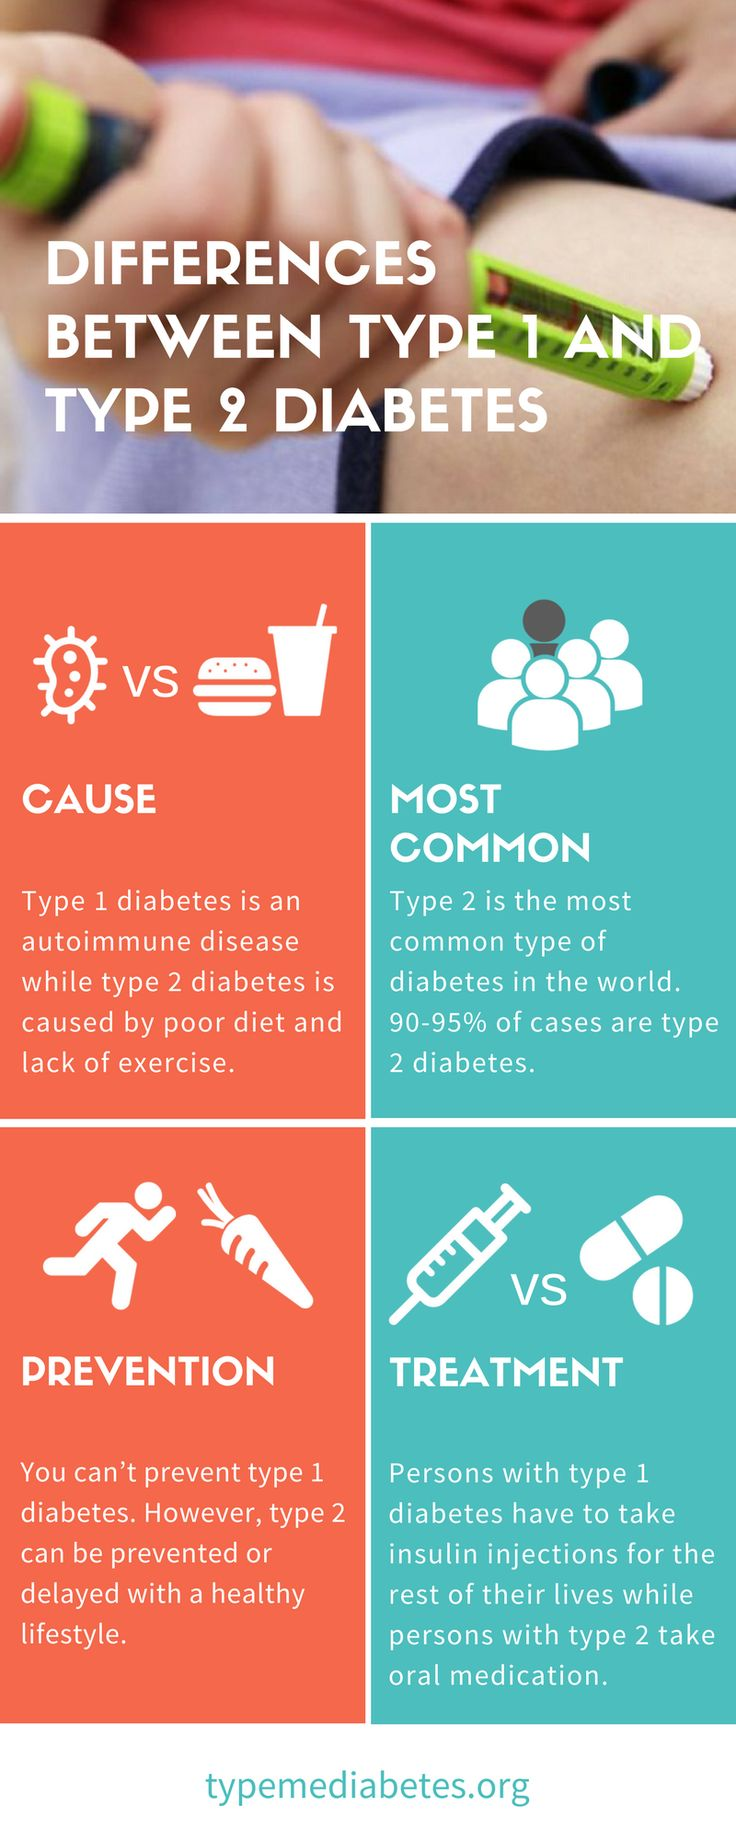 The differences between type 1 and type 2 diabetes confuse many individuals. Persons usually make the assumption that both type 1 and type 2 diabetes come about as a result of poor health choices and being overweight. However, this assumption is incorrect. While both type 1 and type 2 diabetes are characterised by having higher than normal blood sugar levels, the cause and development of the each type are different